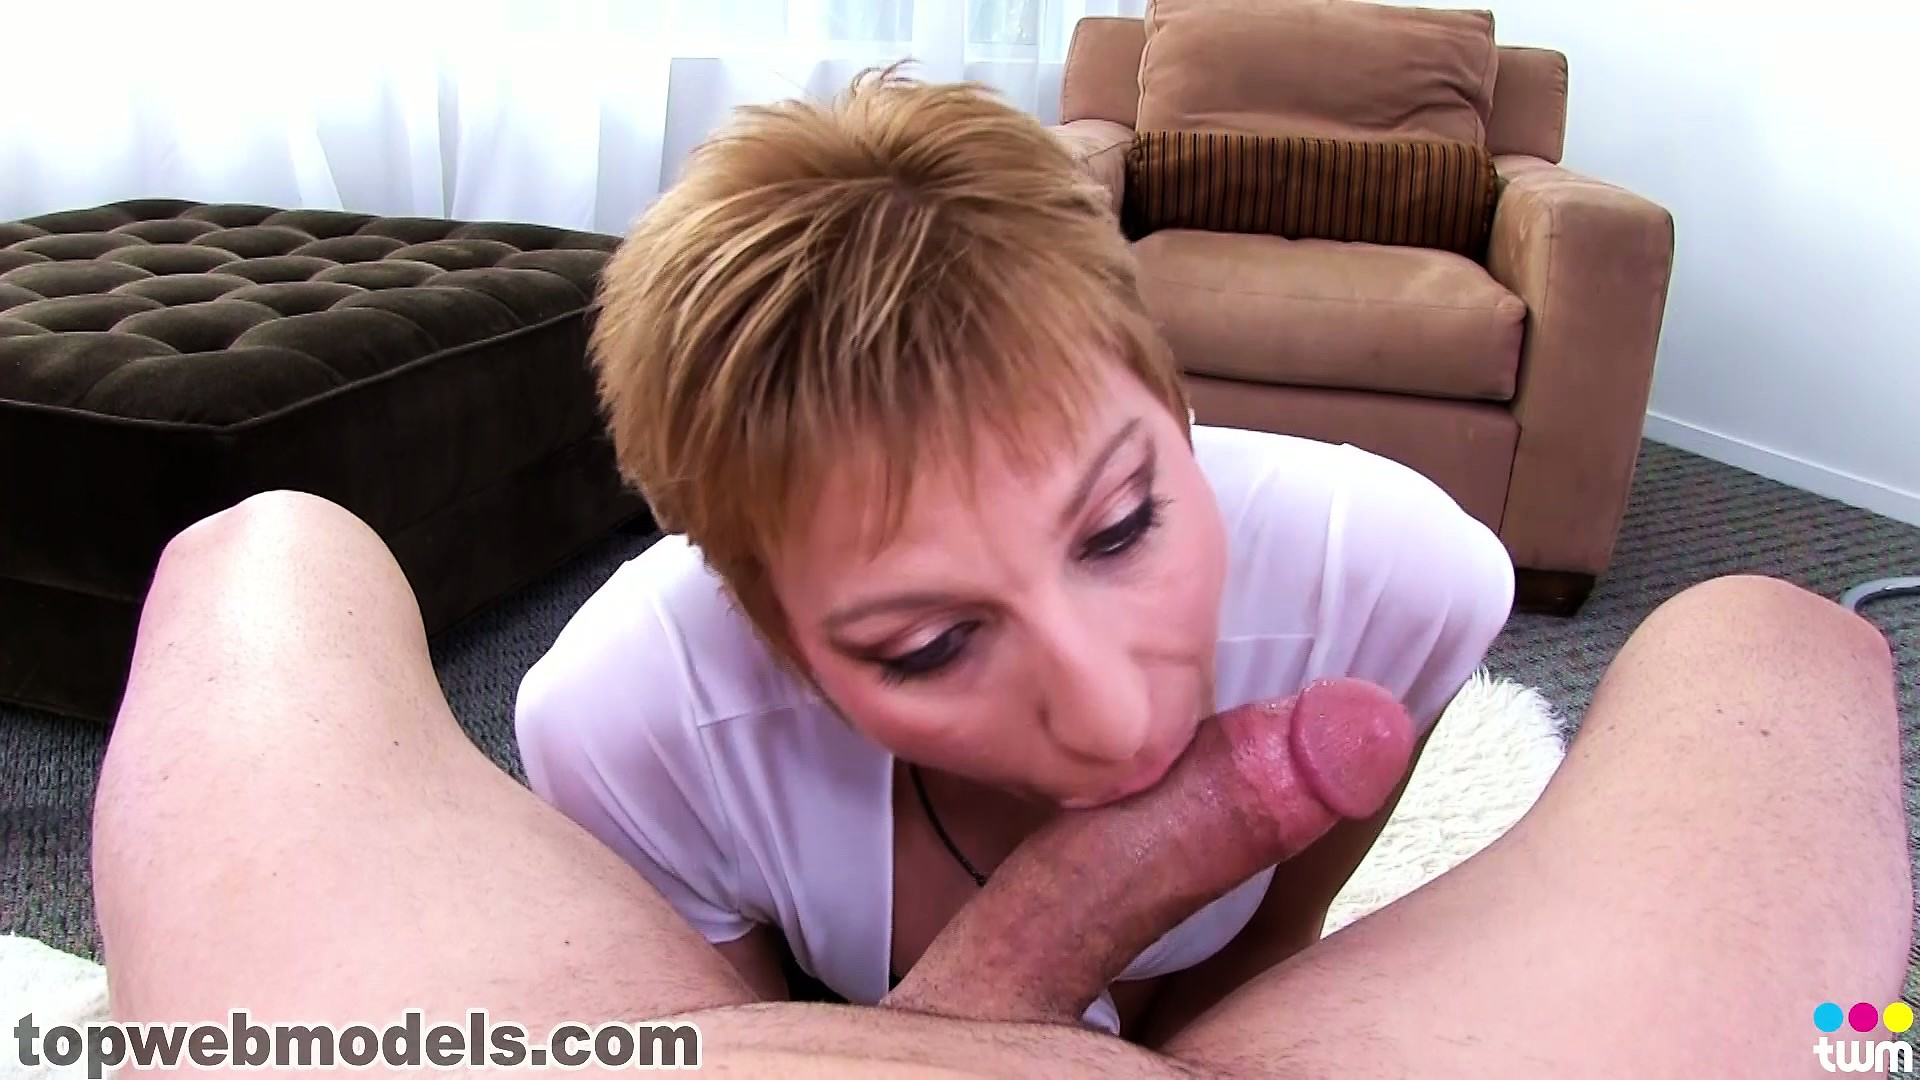 Porno Video of Gemma Gets Down On Her Knees And Has Her Lips And Hands Pleasing That Big Shaft